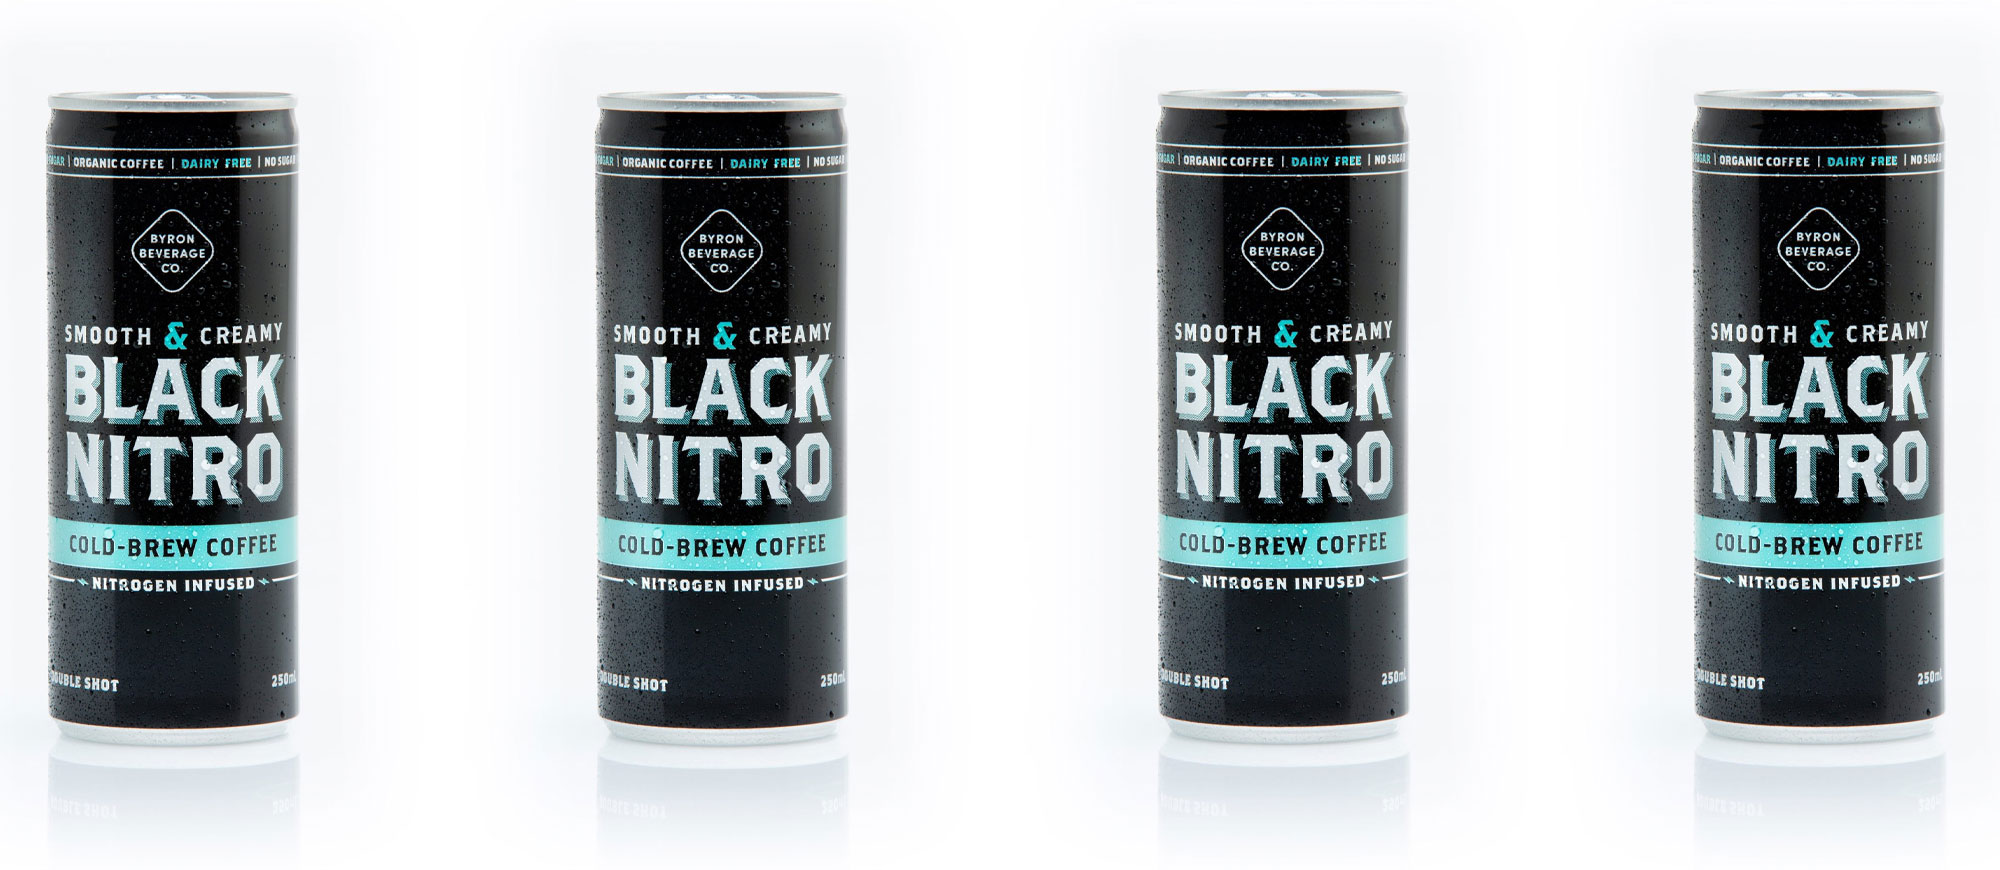 Byron Beverage Co. hooking coffee lovers with sustainable cold brew